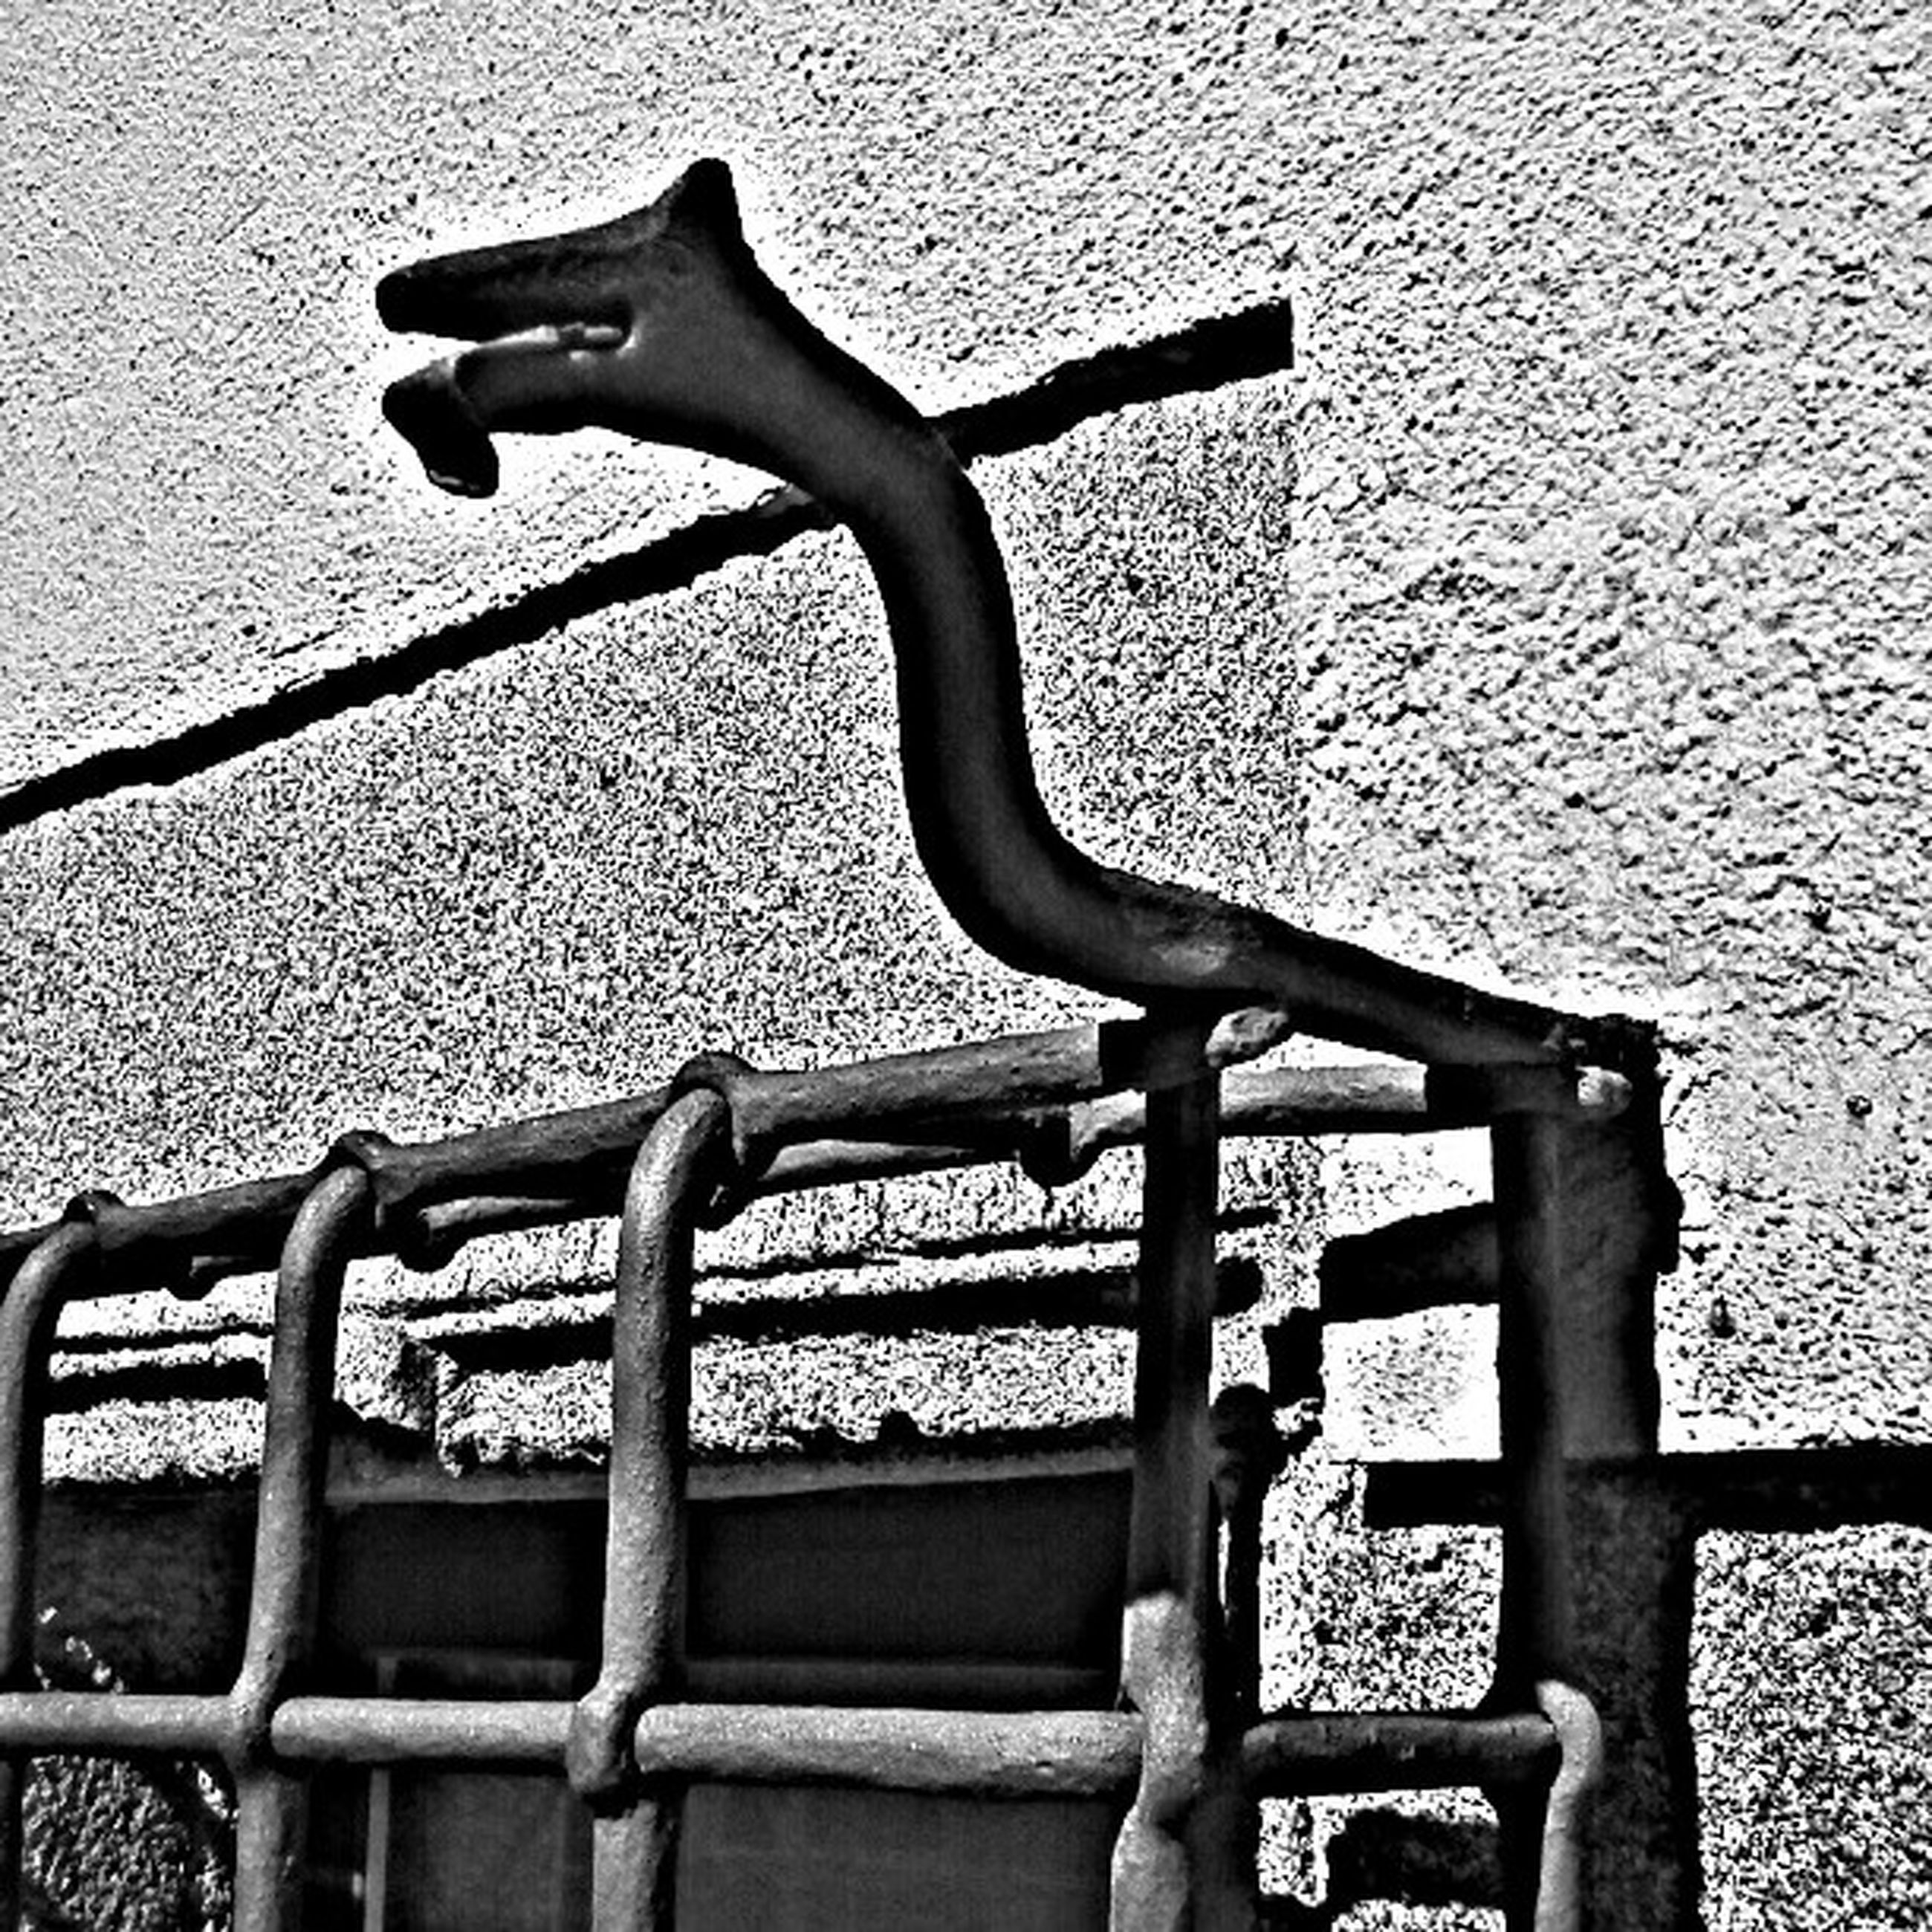 metal, railing, animal themes, built structure, bird, building exterior, architecture, brick wall, outdoors, no people, day, wall - building feature, one animal, stone wall, sunlight, fence, wall, close-up, metallic, wildlife